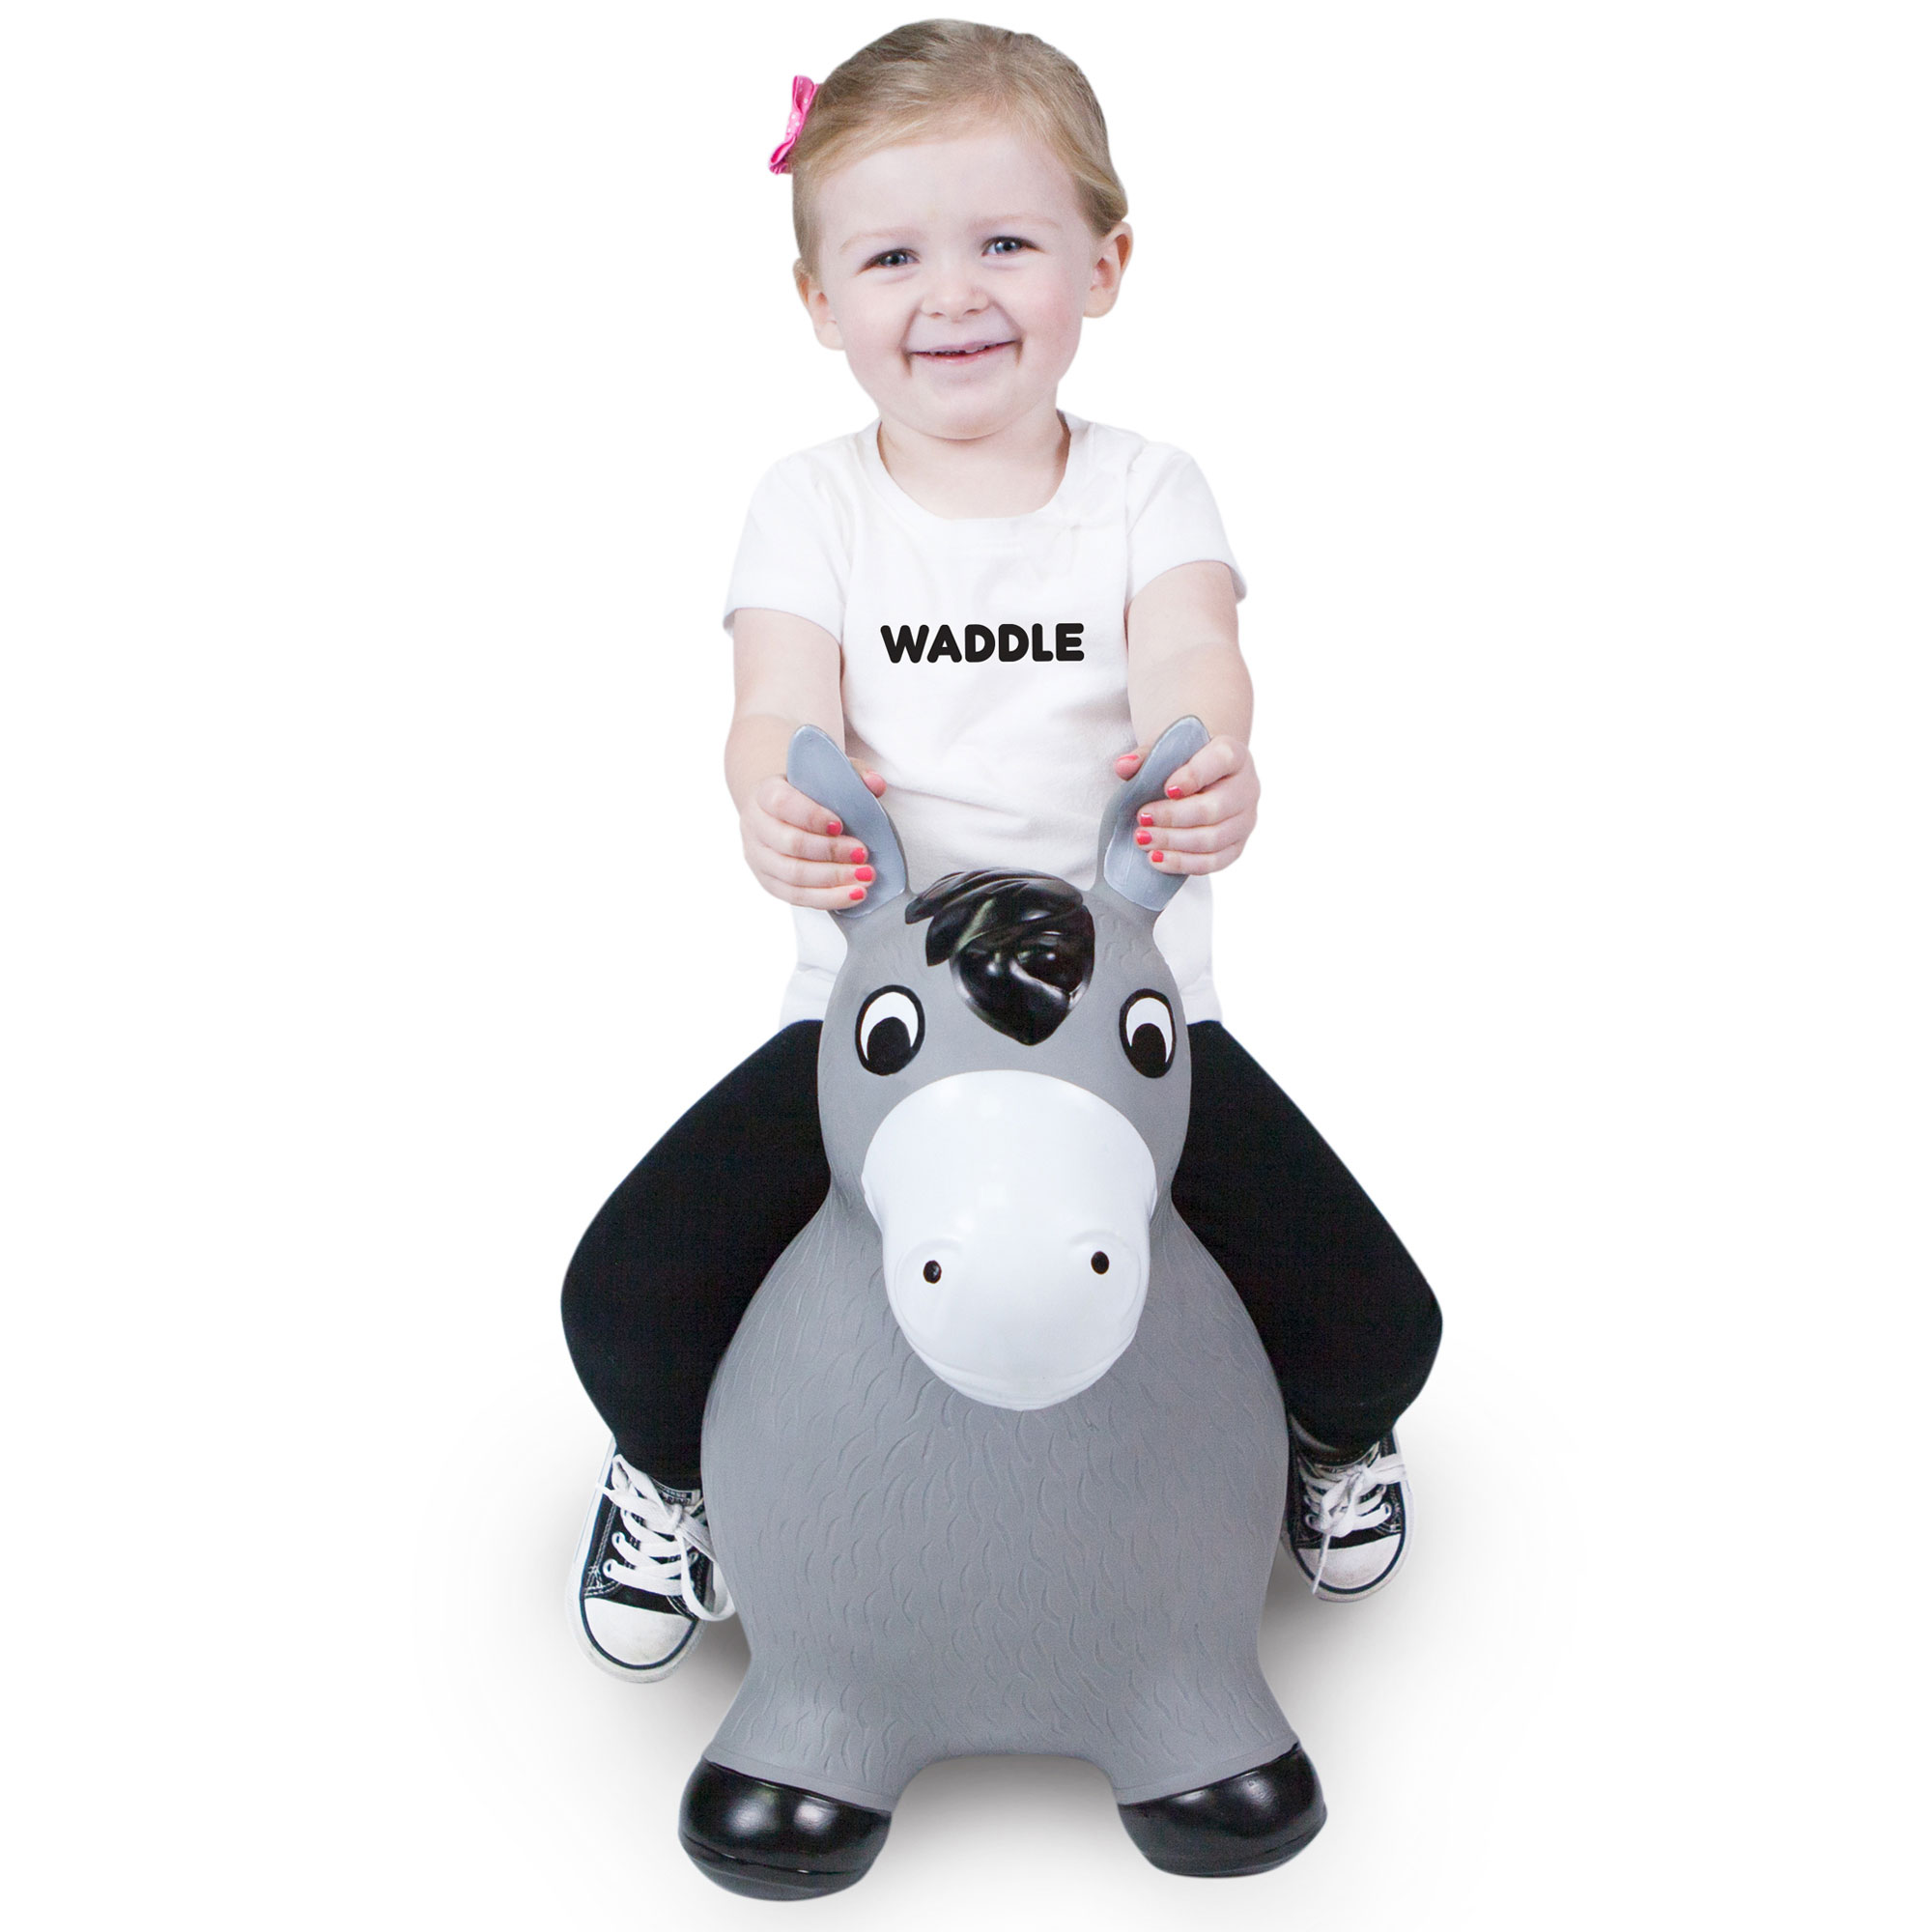 Waddle Ride On Toys for Kids | Best Bouncy Horse Hopper | Inflatable Farm Animal Ride-On... by WADDLE